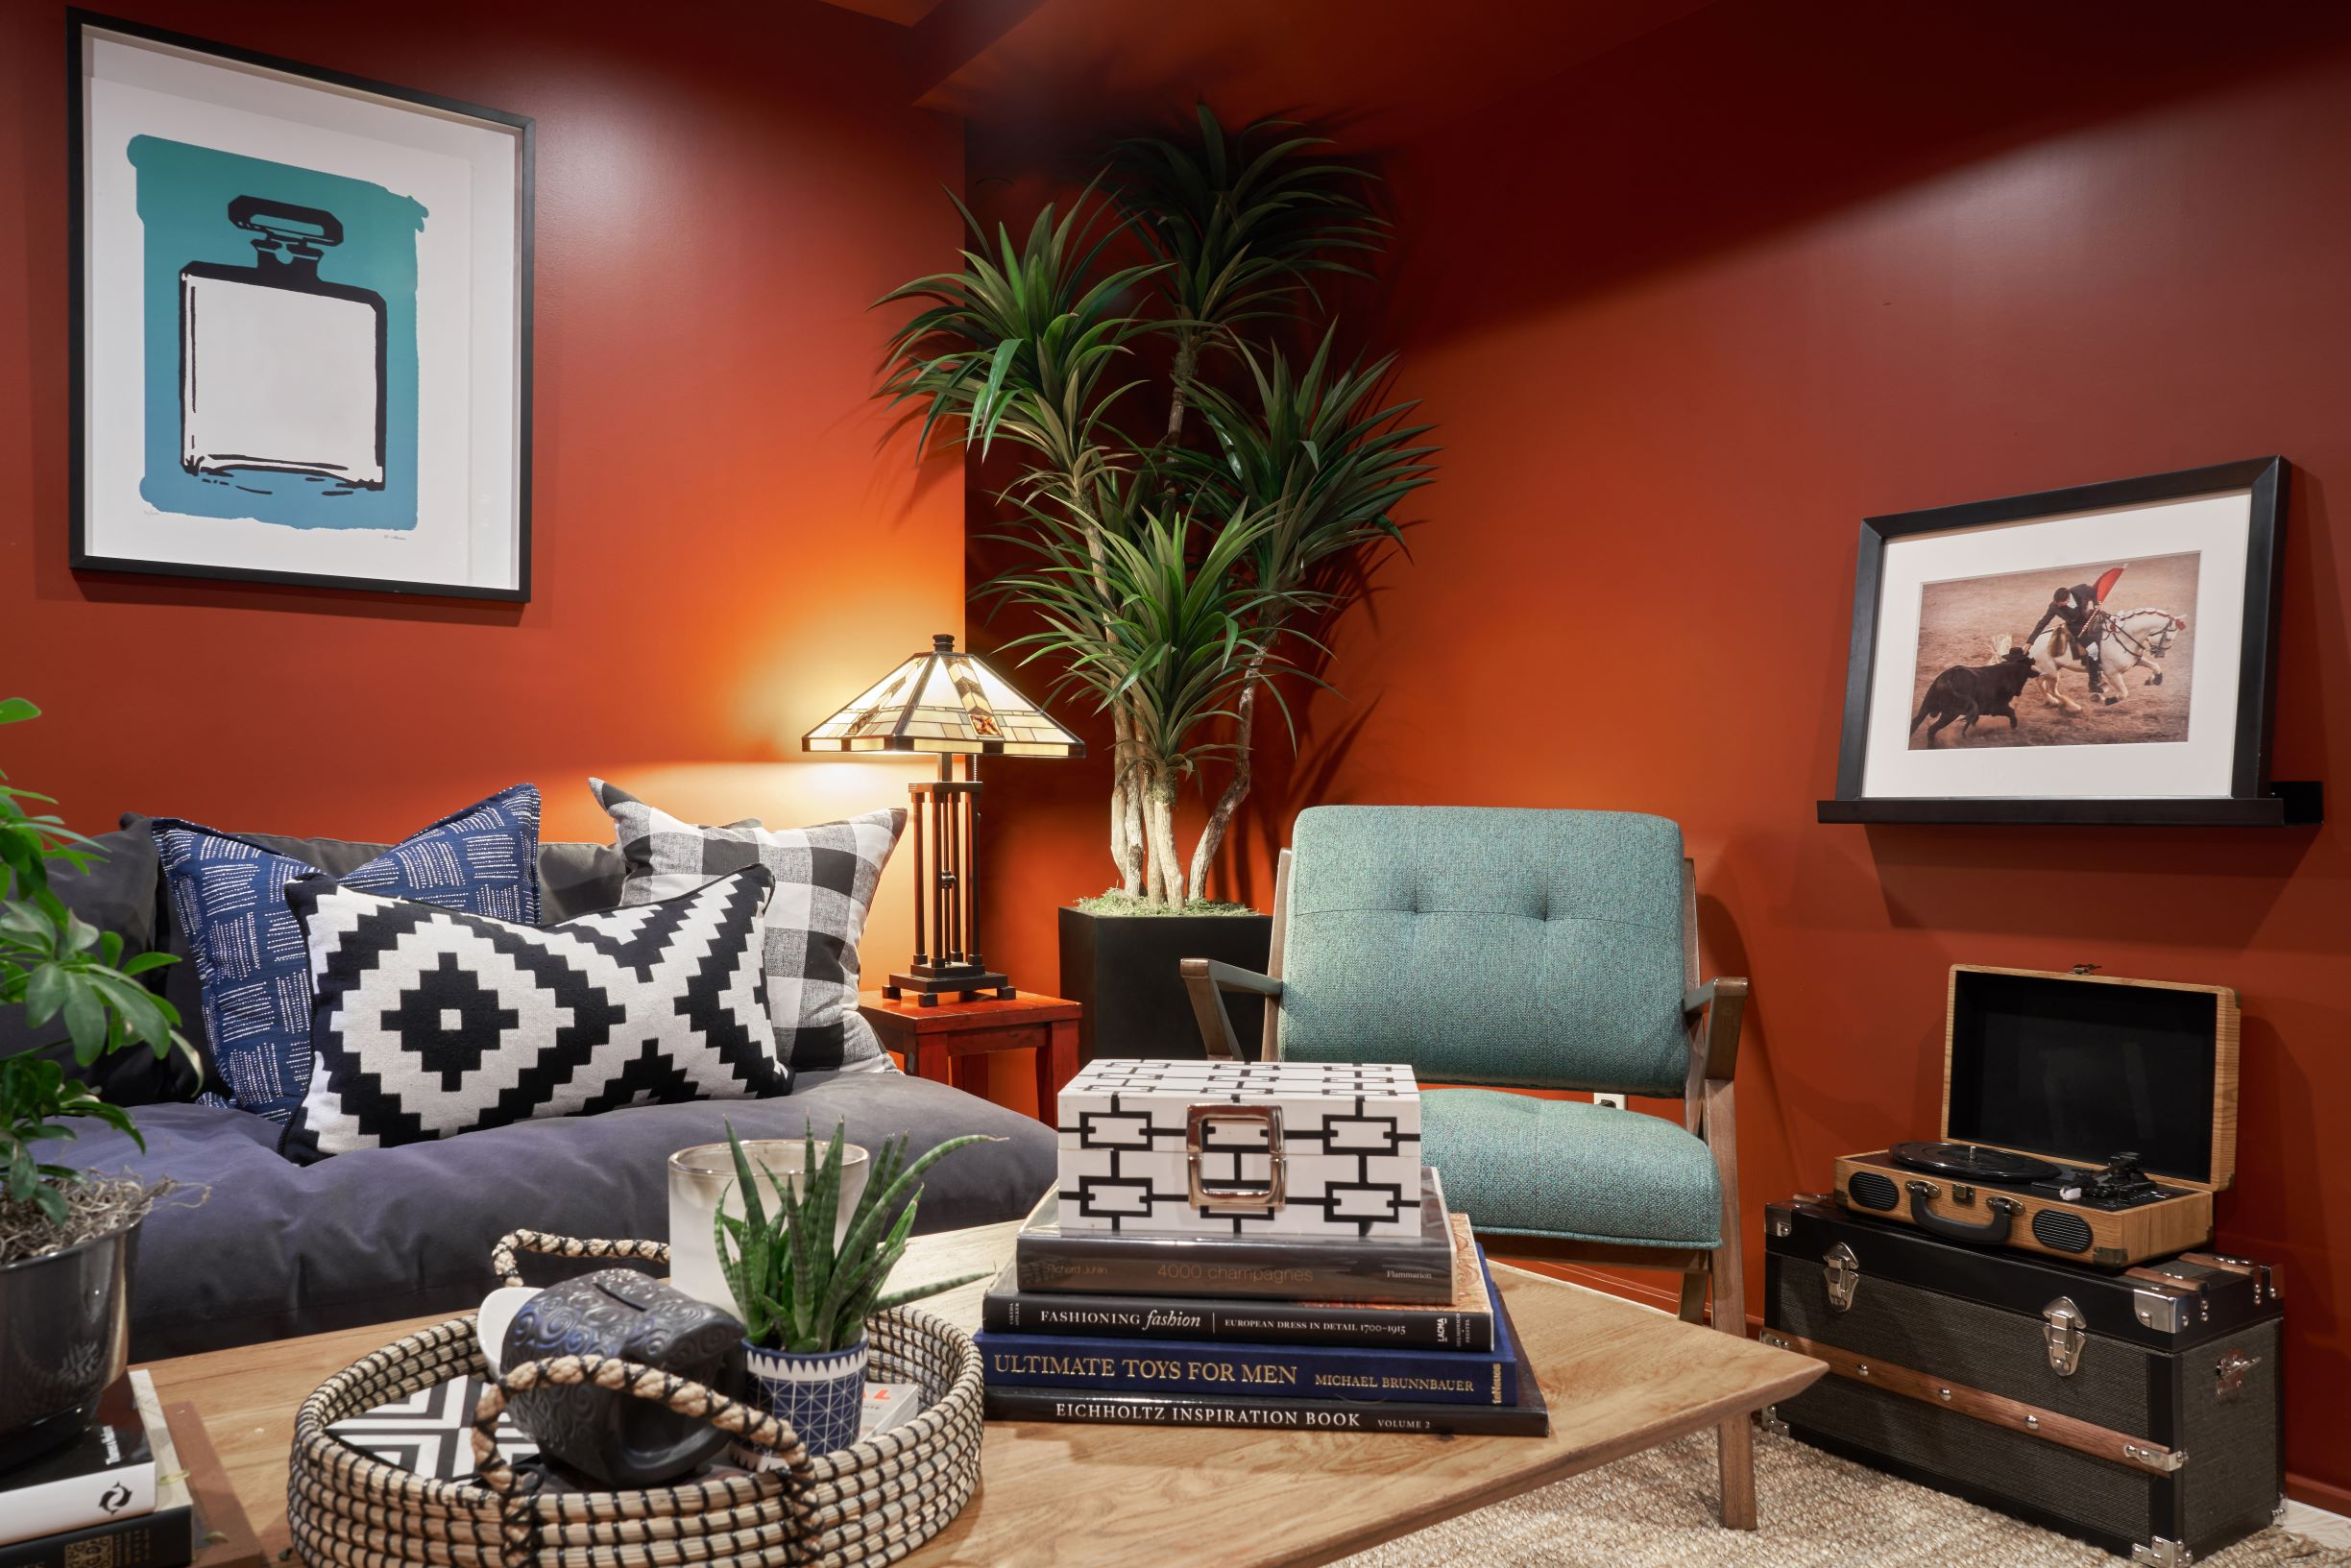 Dunn edwards color of the year spice of life tv room